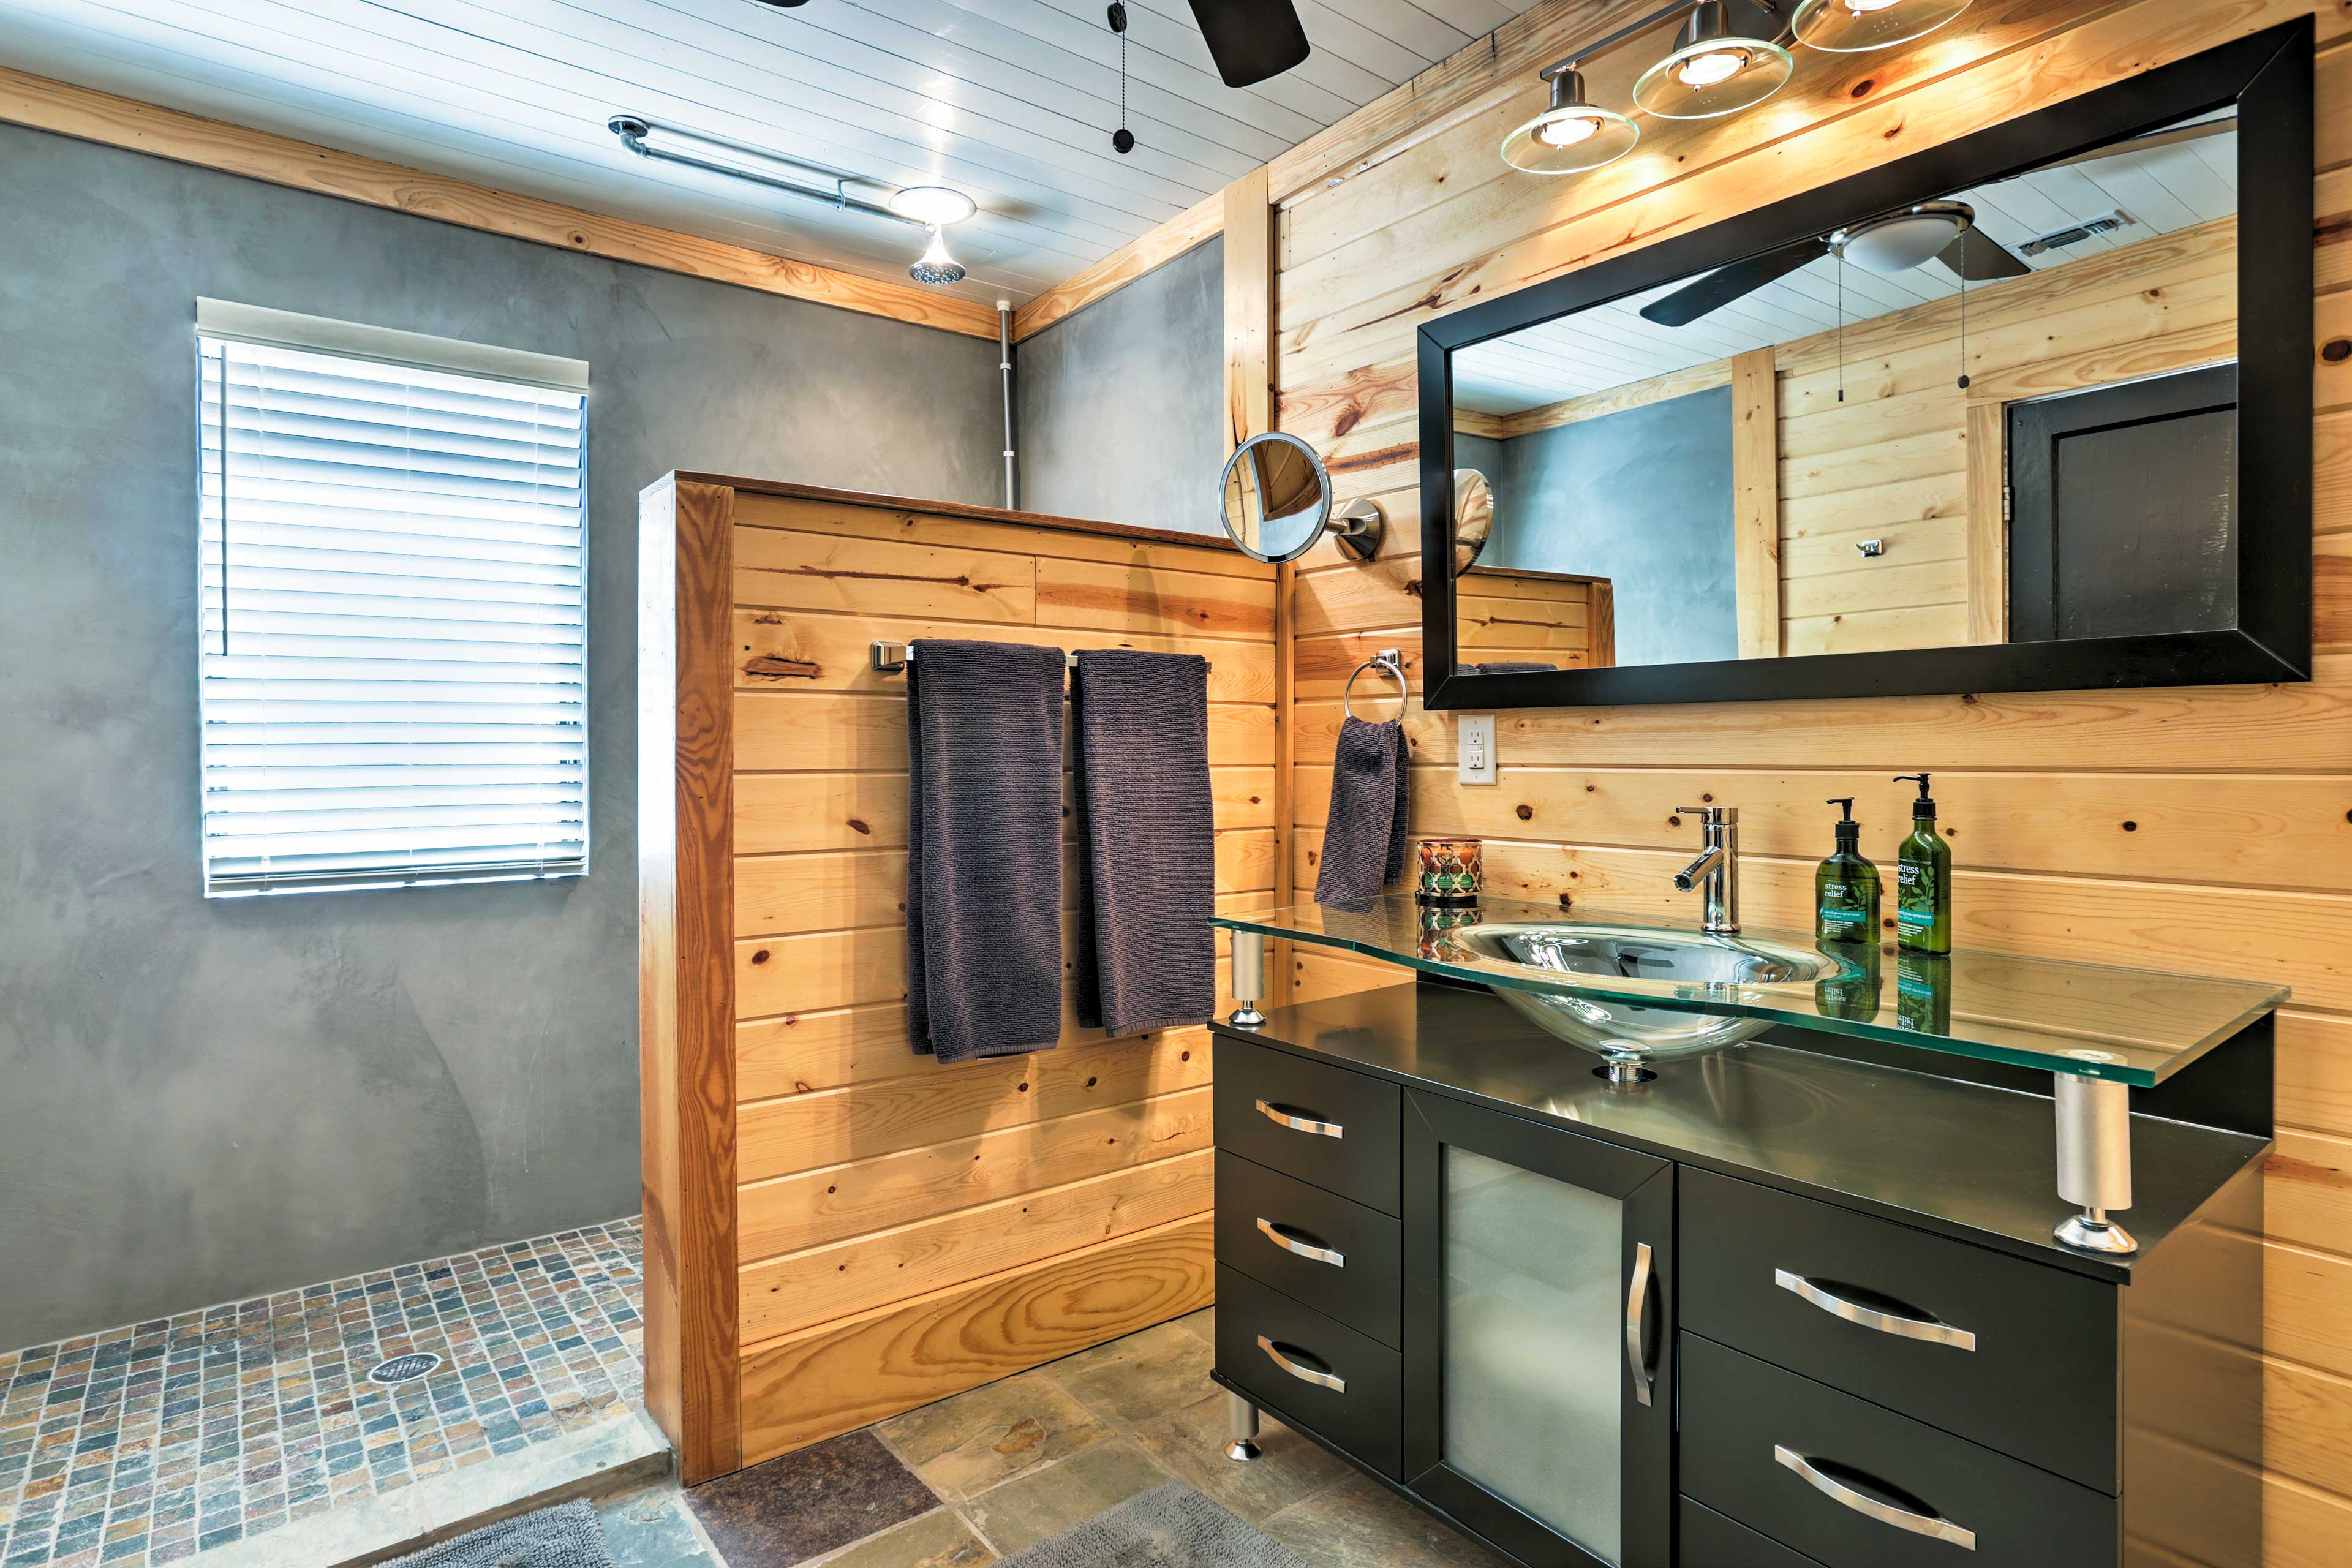 The first bathroom offers a walk-in shower and exposed wood accents.